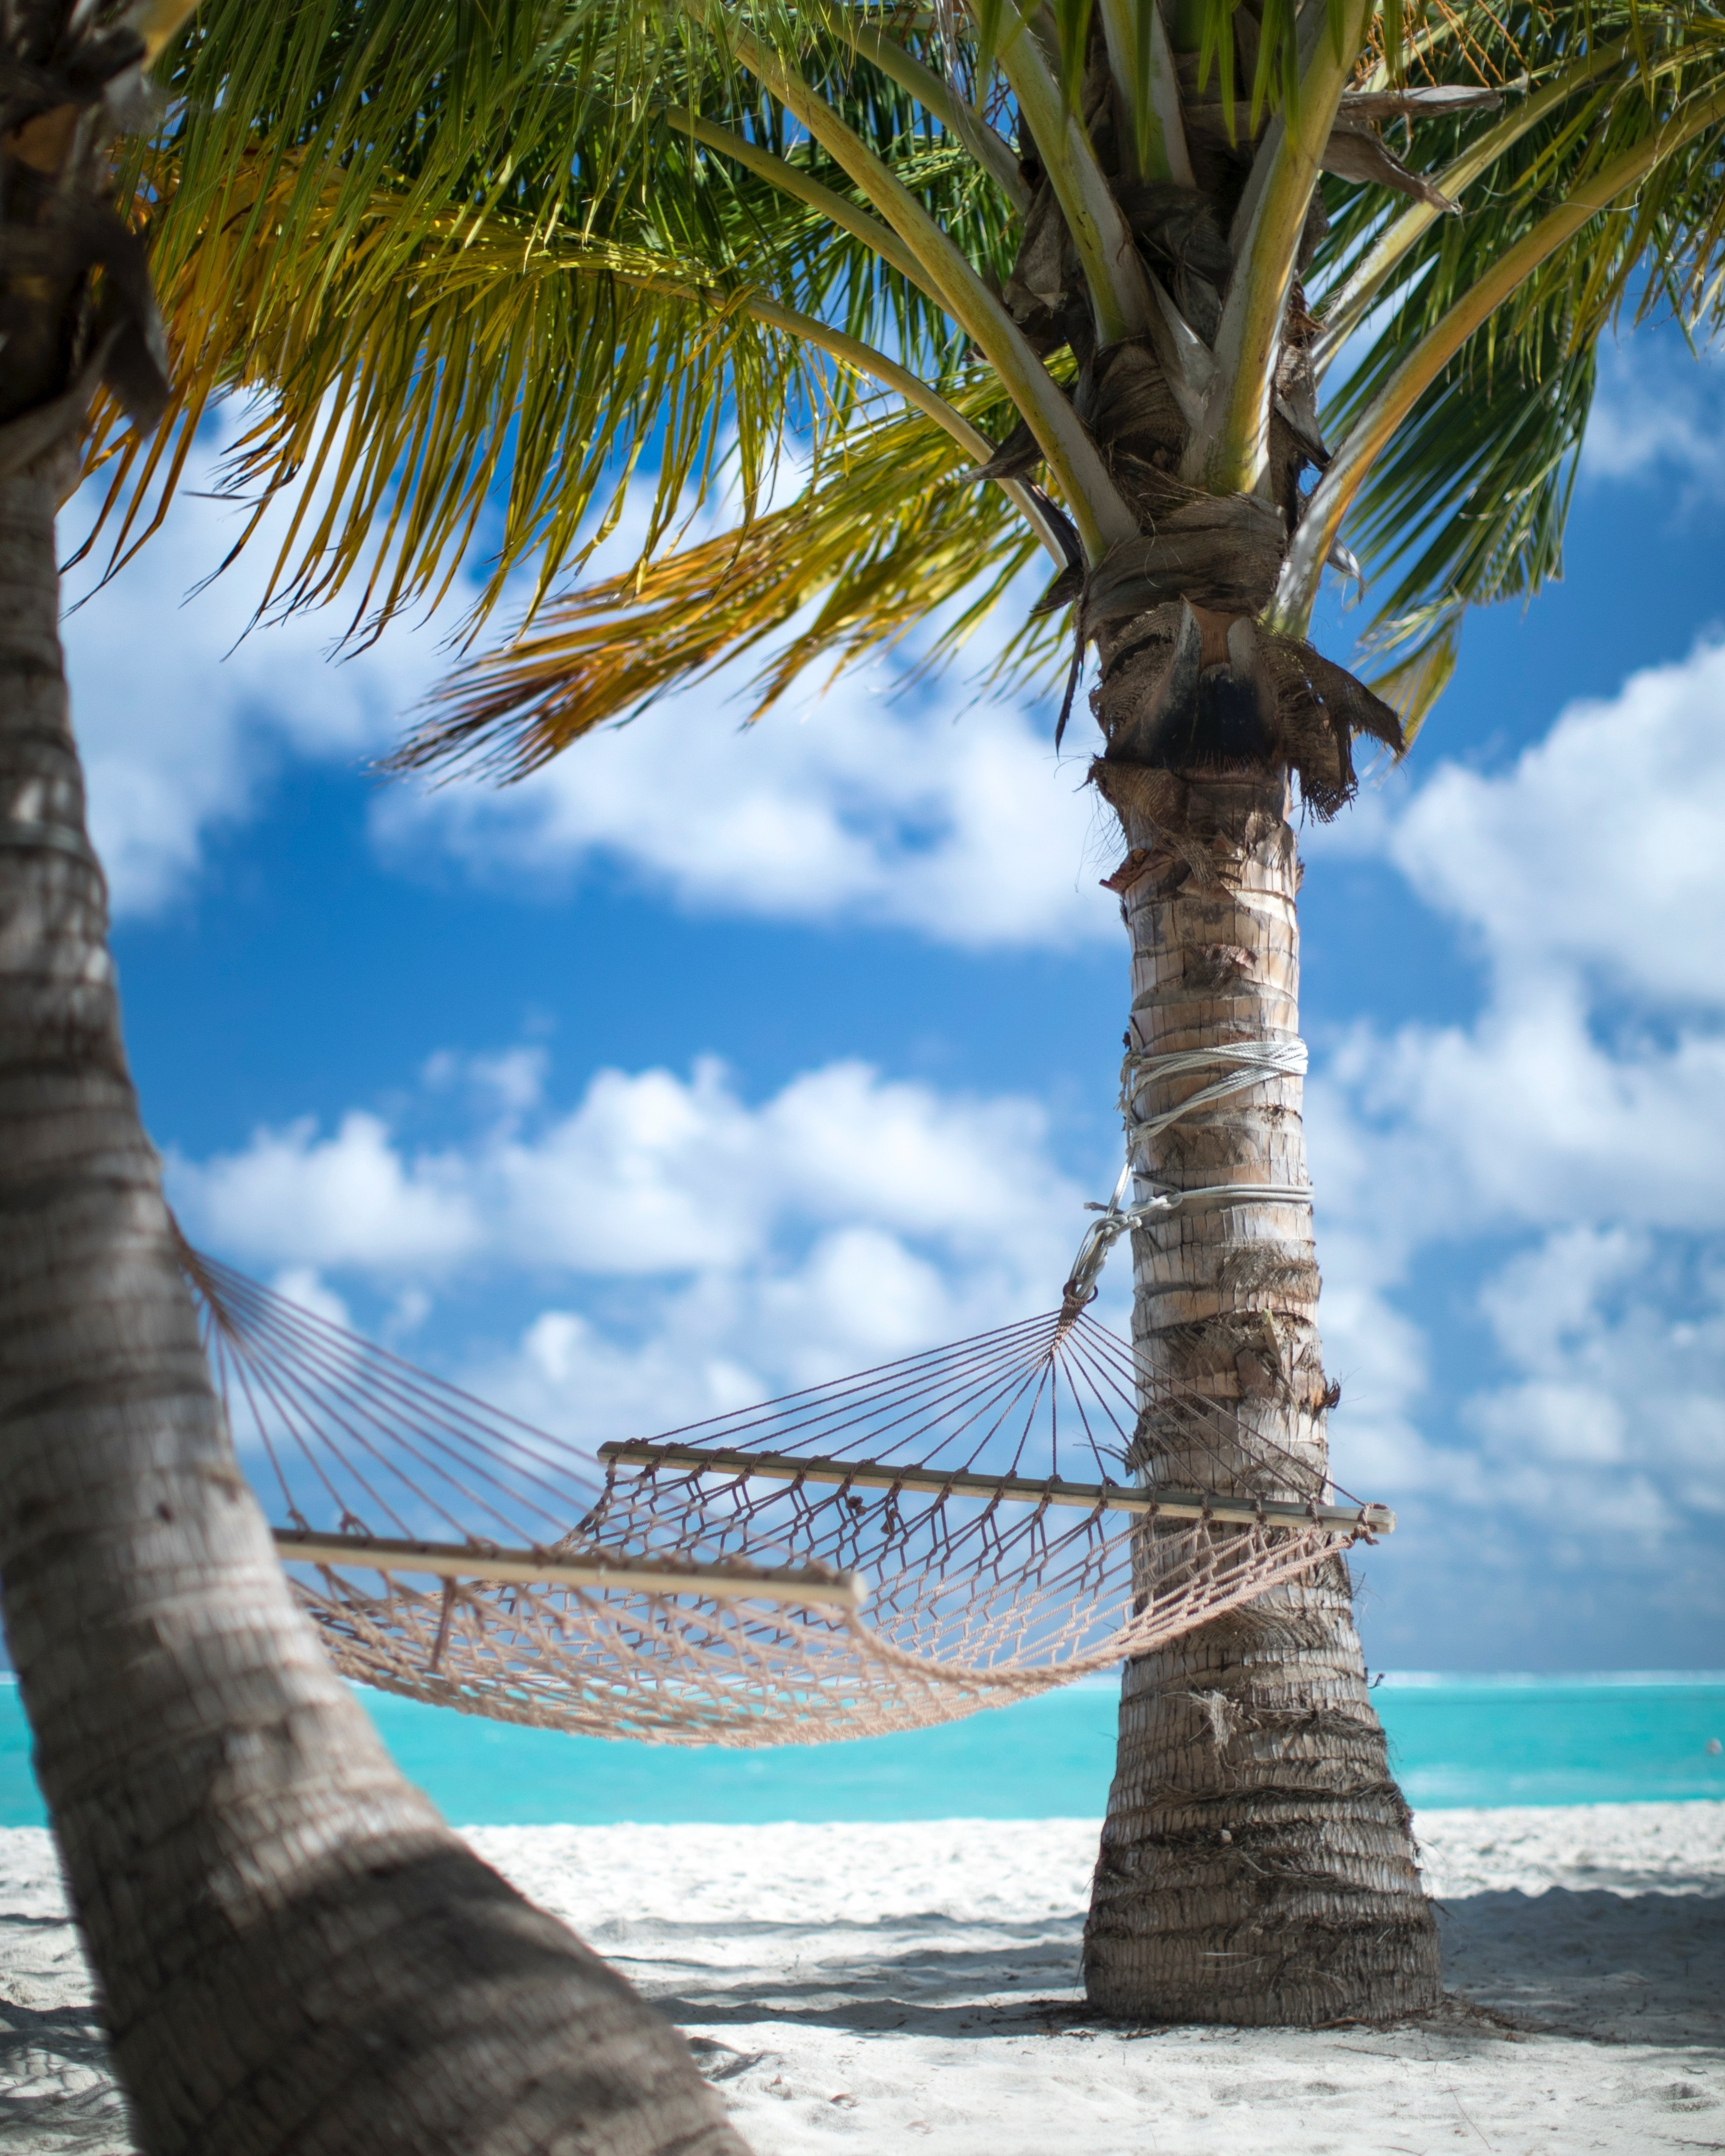 maldives wallpapers, photos and desktop backgrounds up to ...